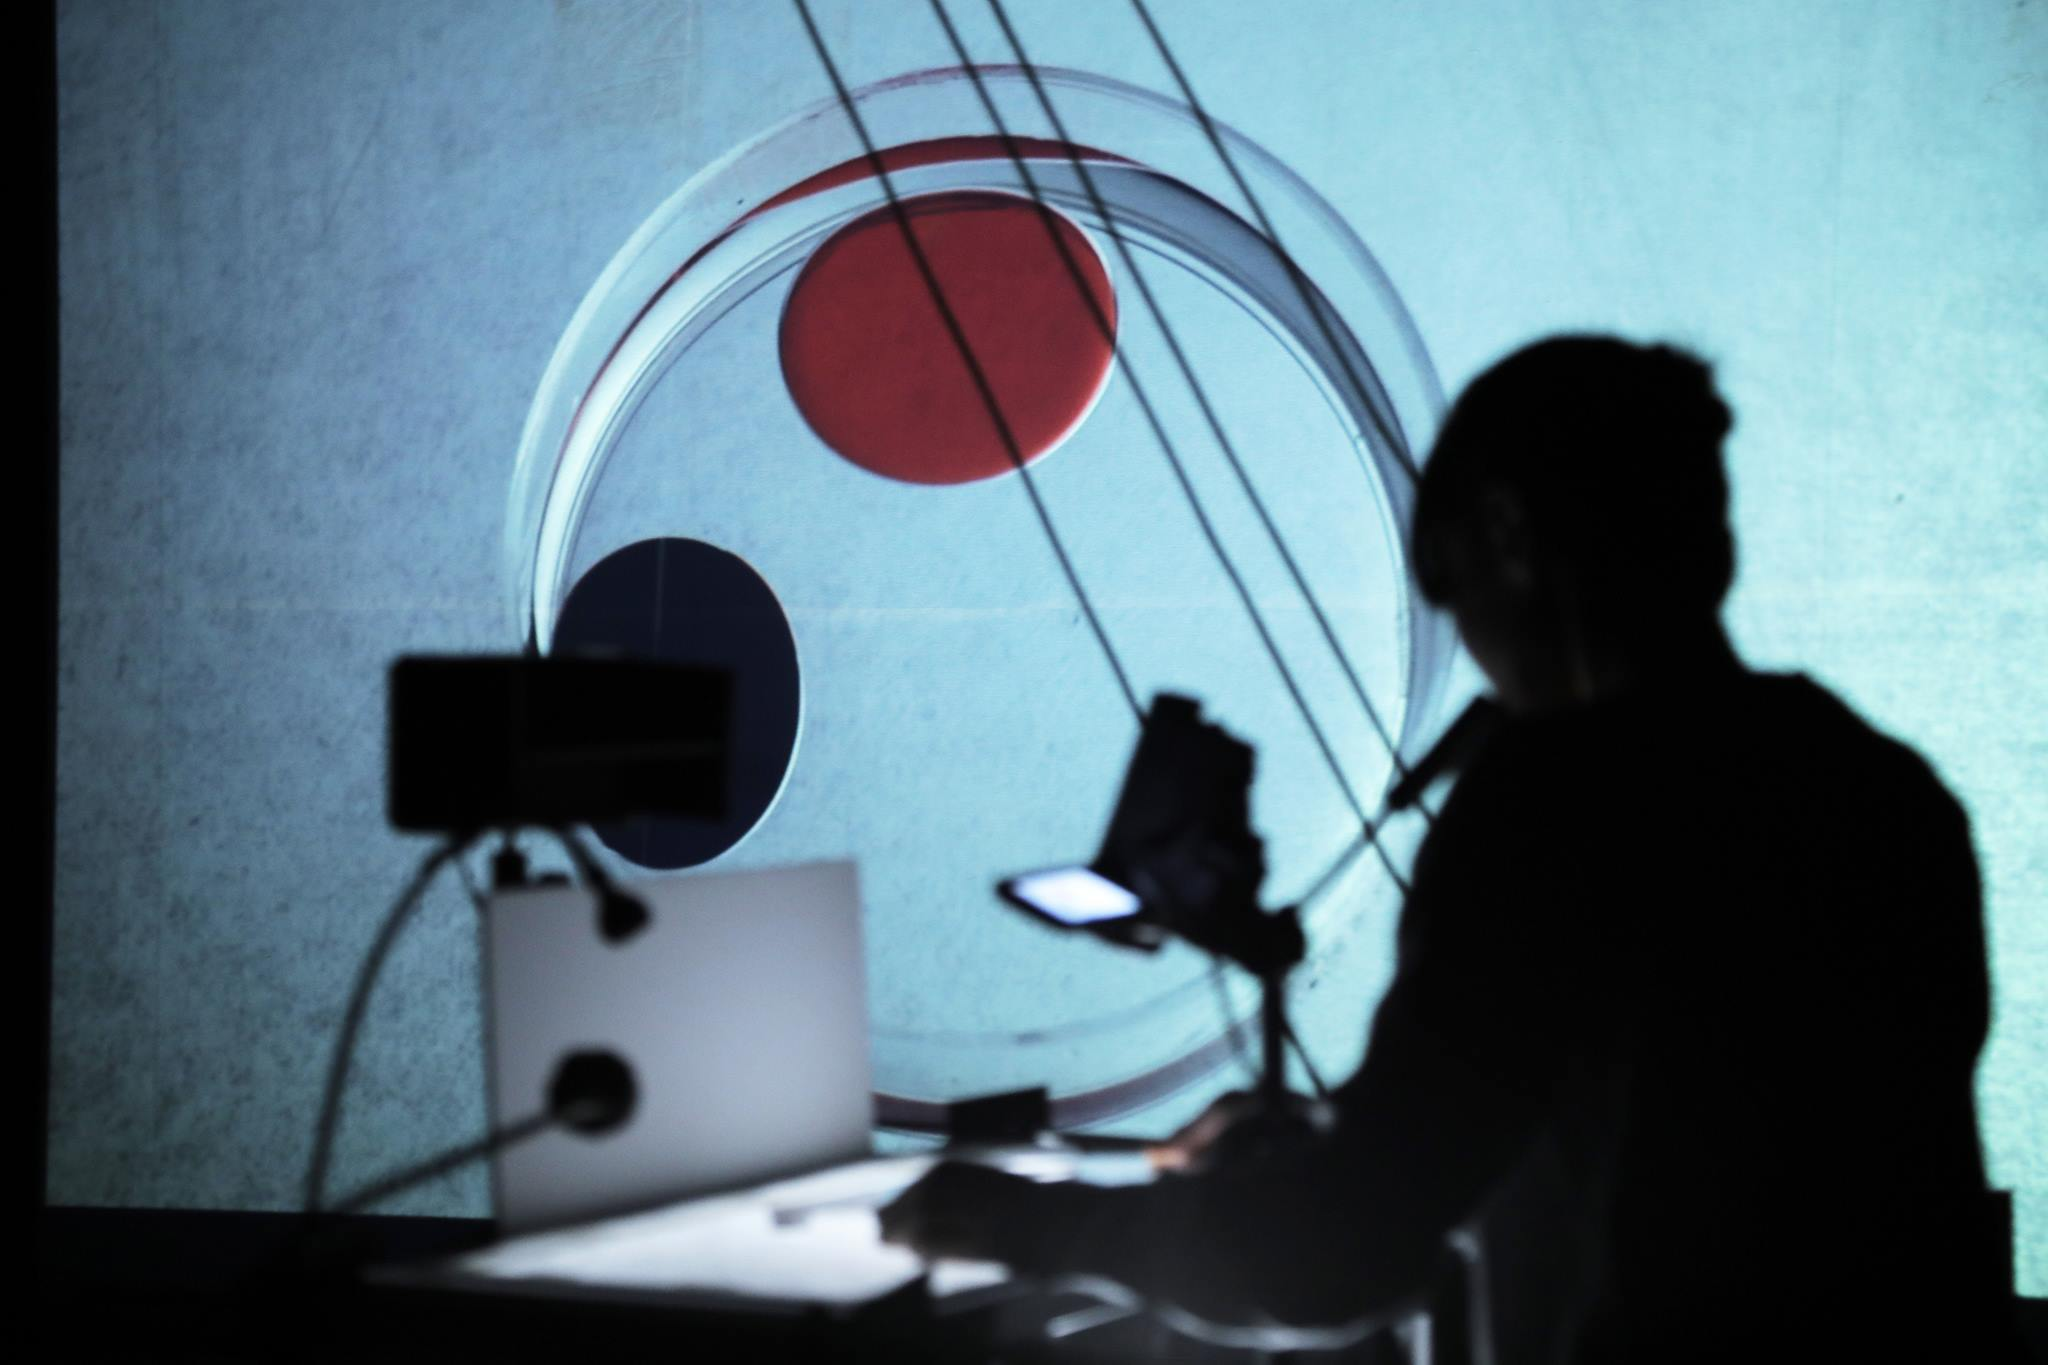 performer sits in silhouette with back to the audience manipulating small objects on a table and the image on a projector screen shows a tiny orange dot being moved